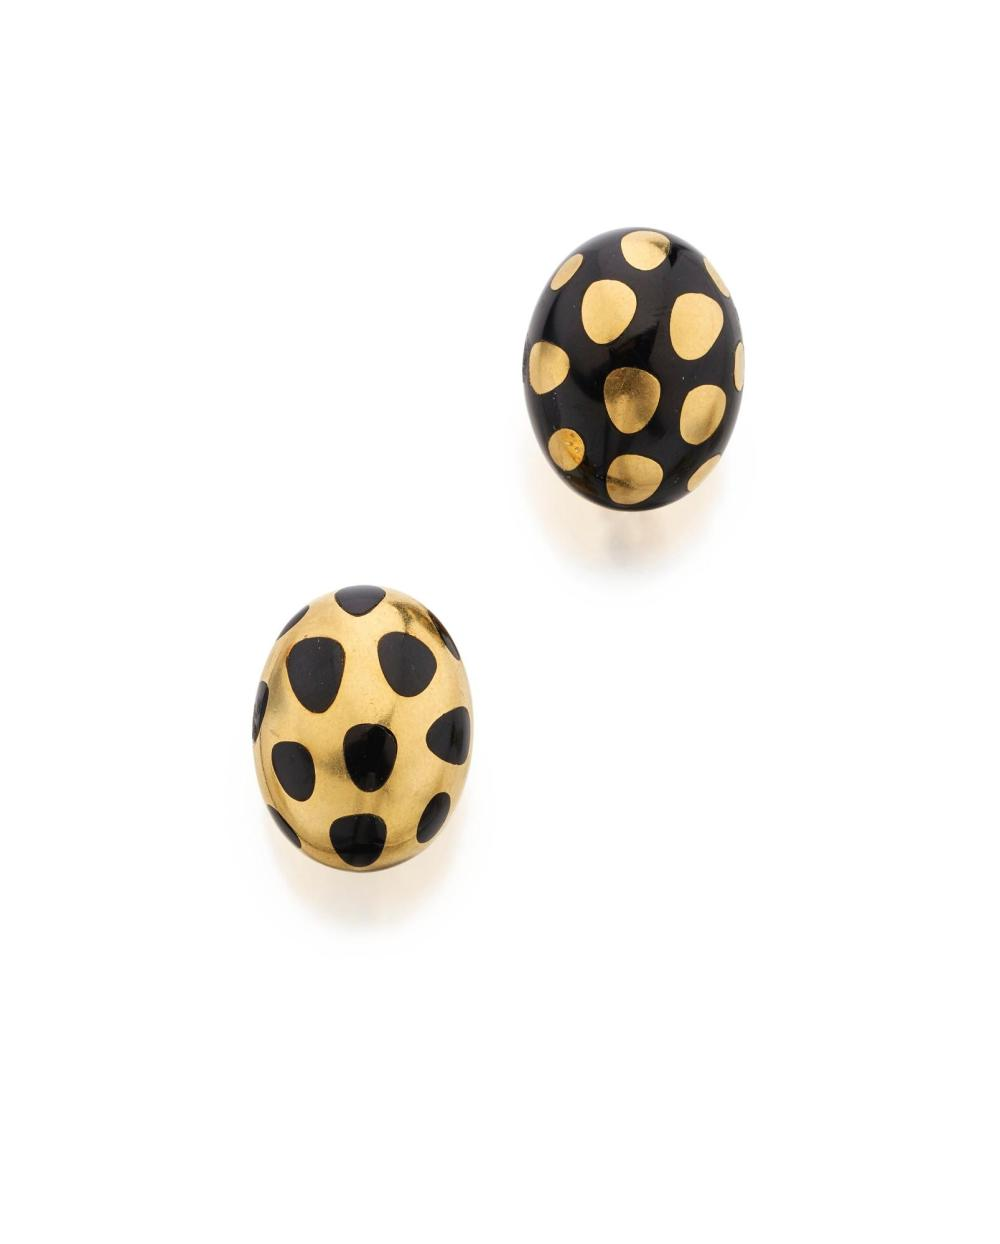 PAIR OF GOLD AND BLACK JADE 'POSITIVE NEGATIVE' EARCLIPS, ANGELA CUMMINGS FOR TIFFANY & CO.